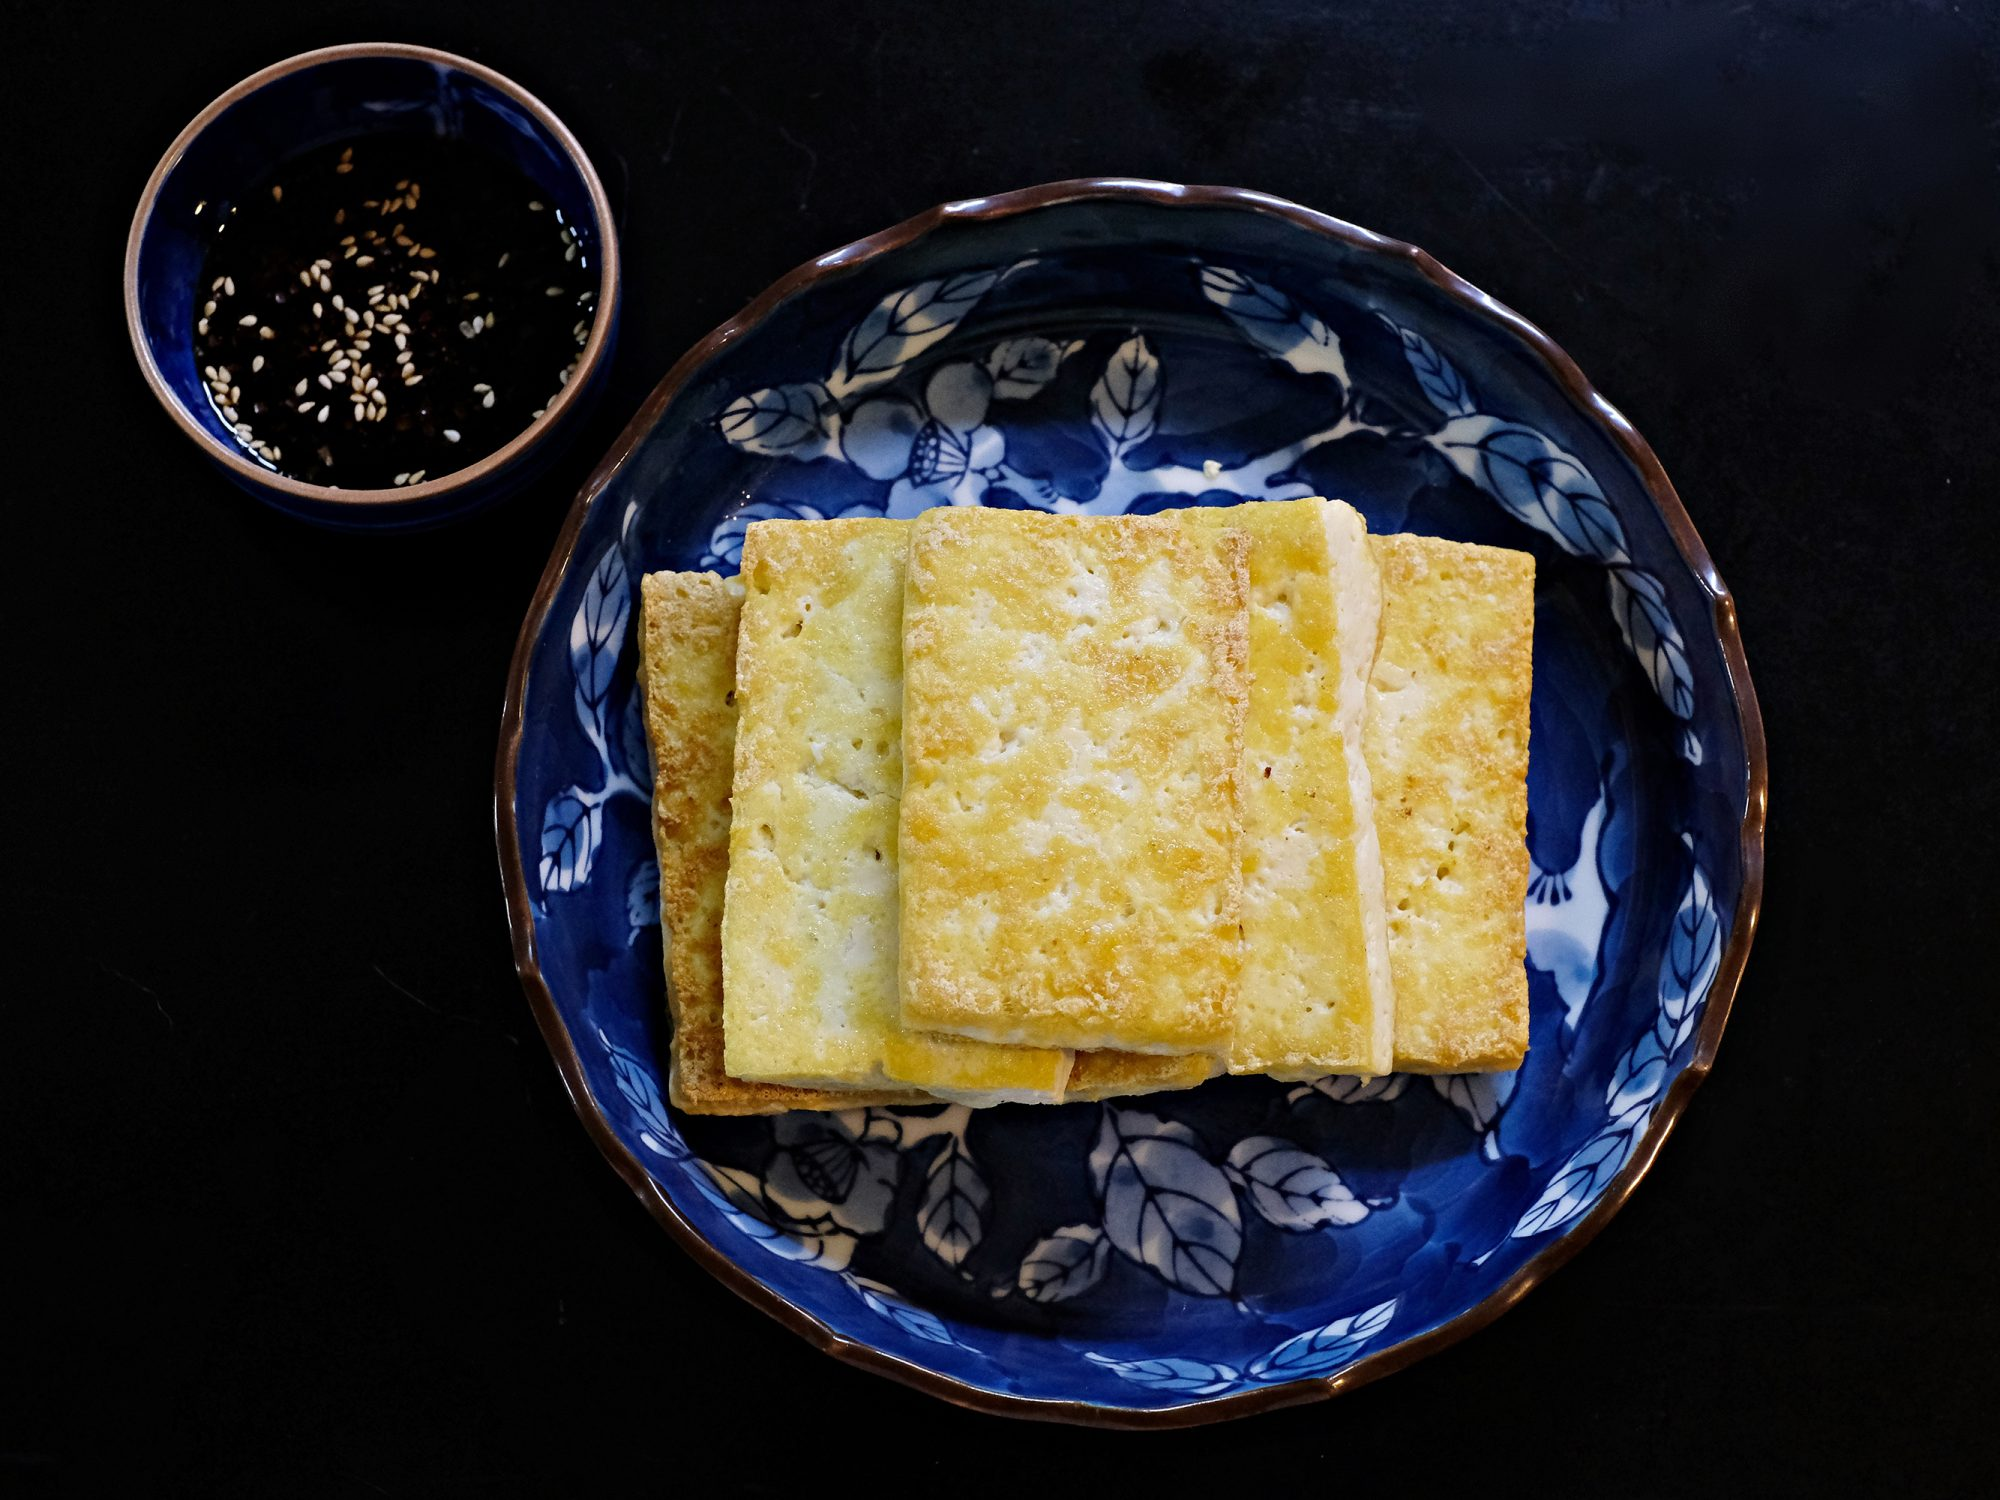 Pan fried crispy tofu is served with dipping soy sauce.